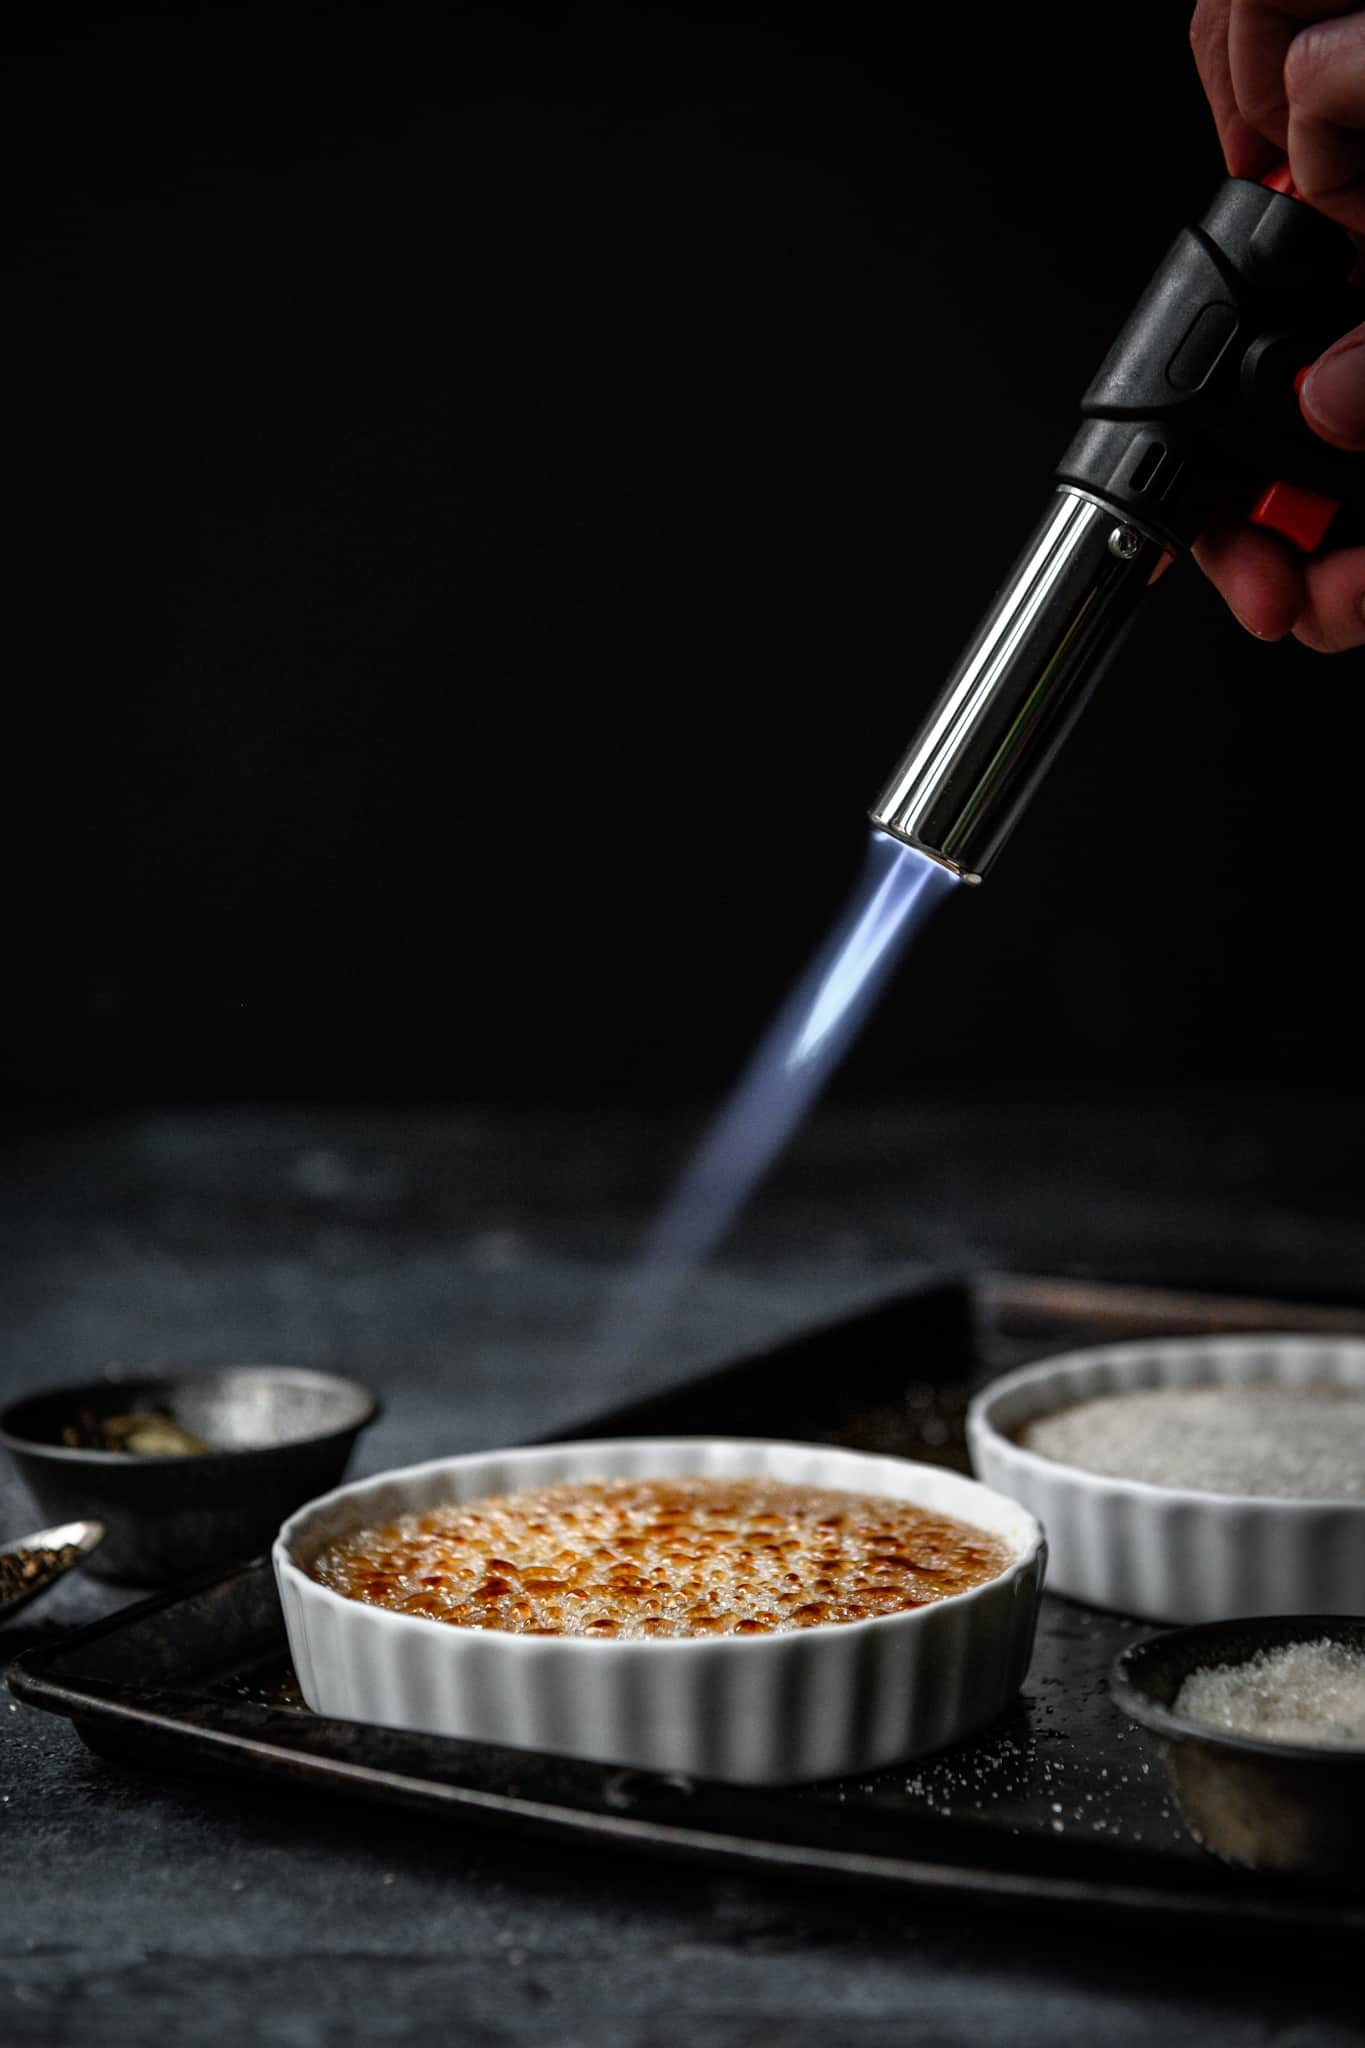 person using blowtorch to caramelize sugar for creme brulee